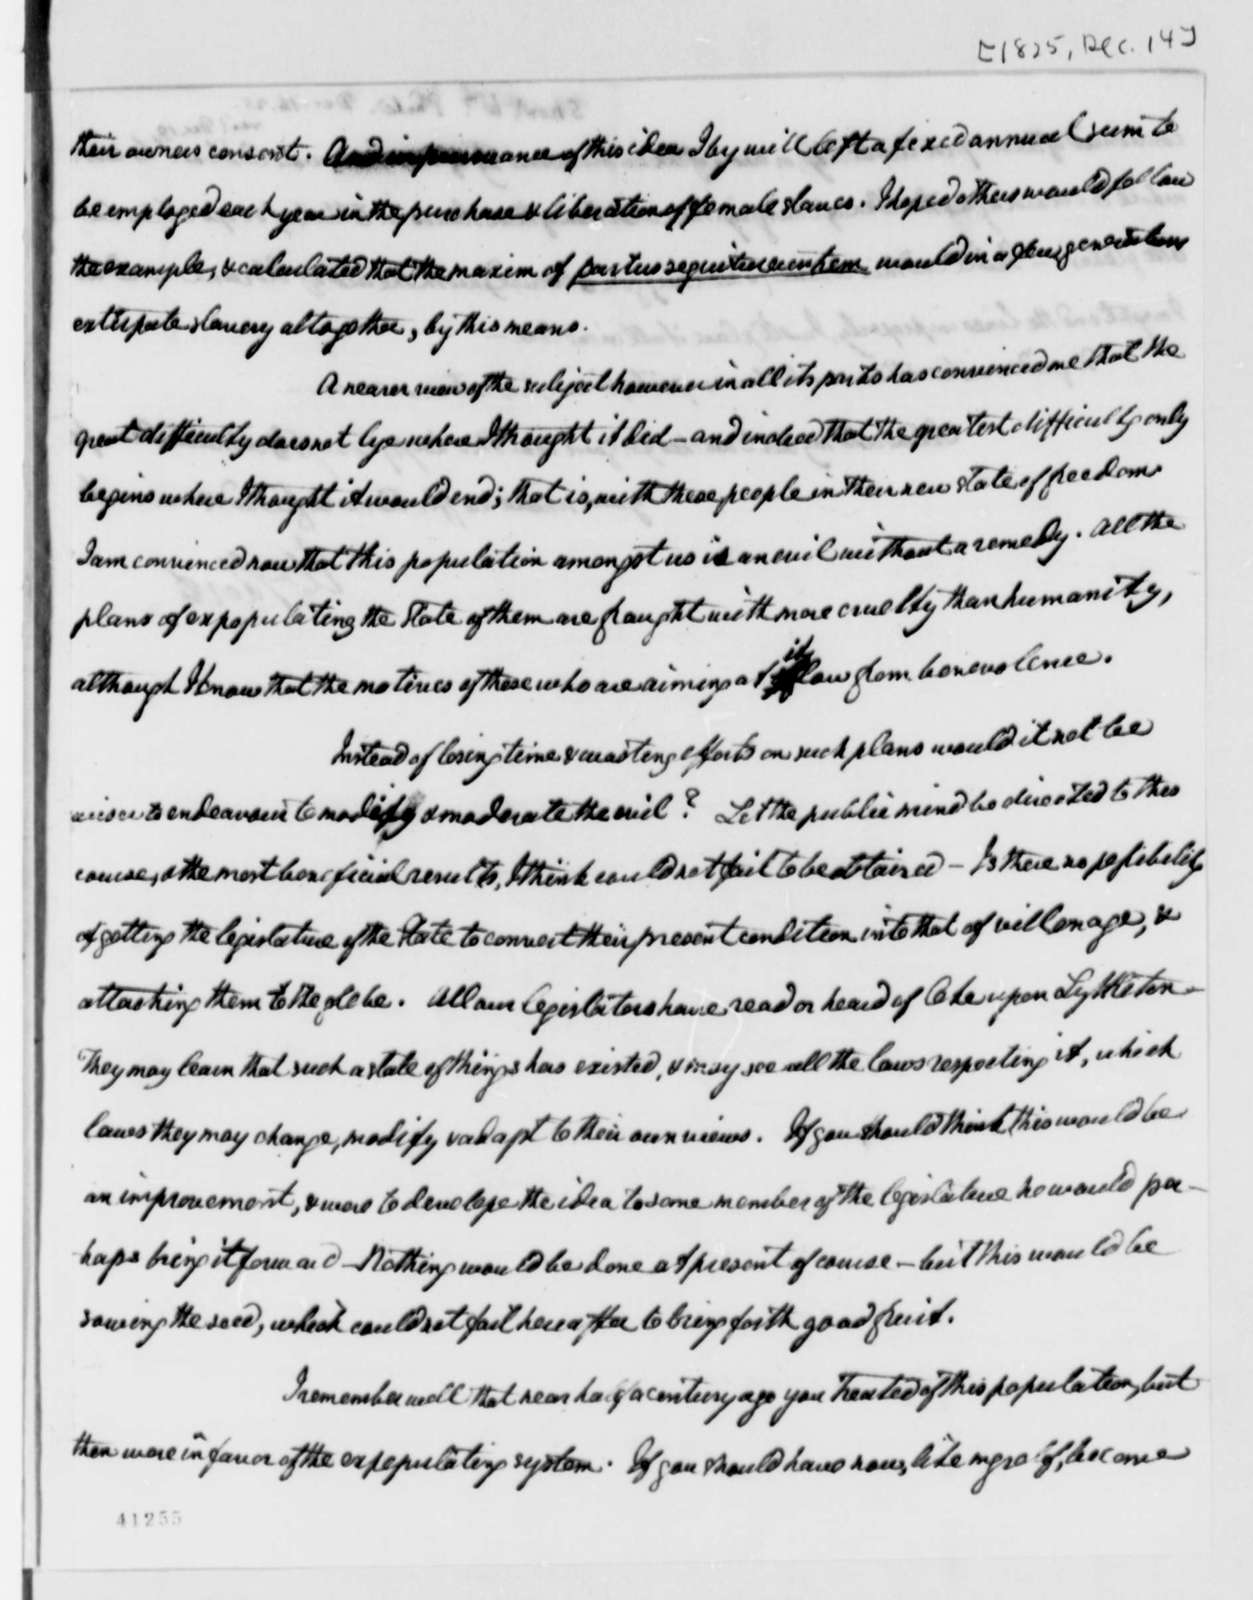 William Short to Thomas Jefferson, December 14, 1825